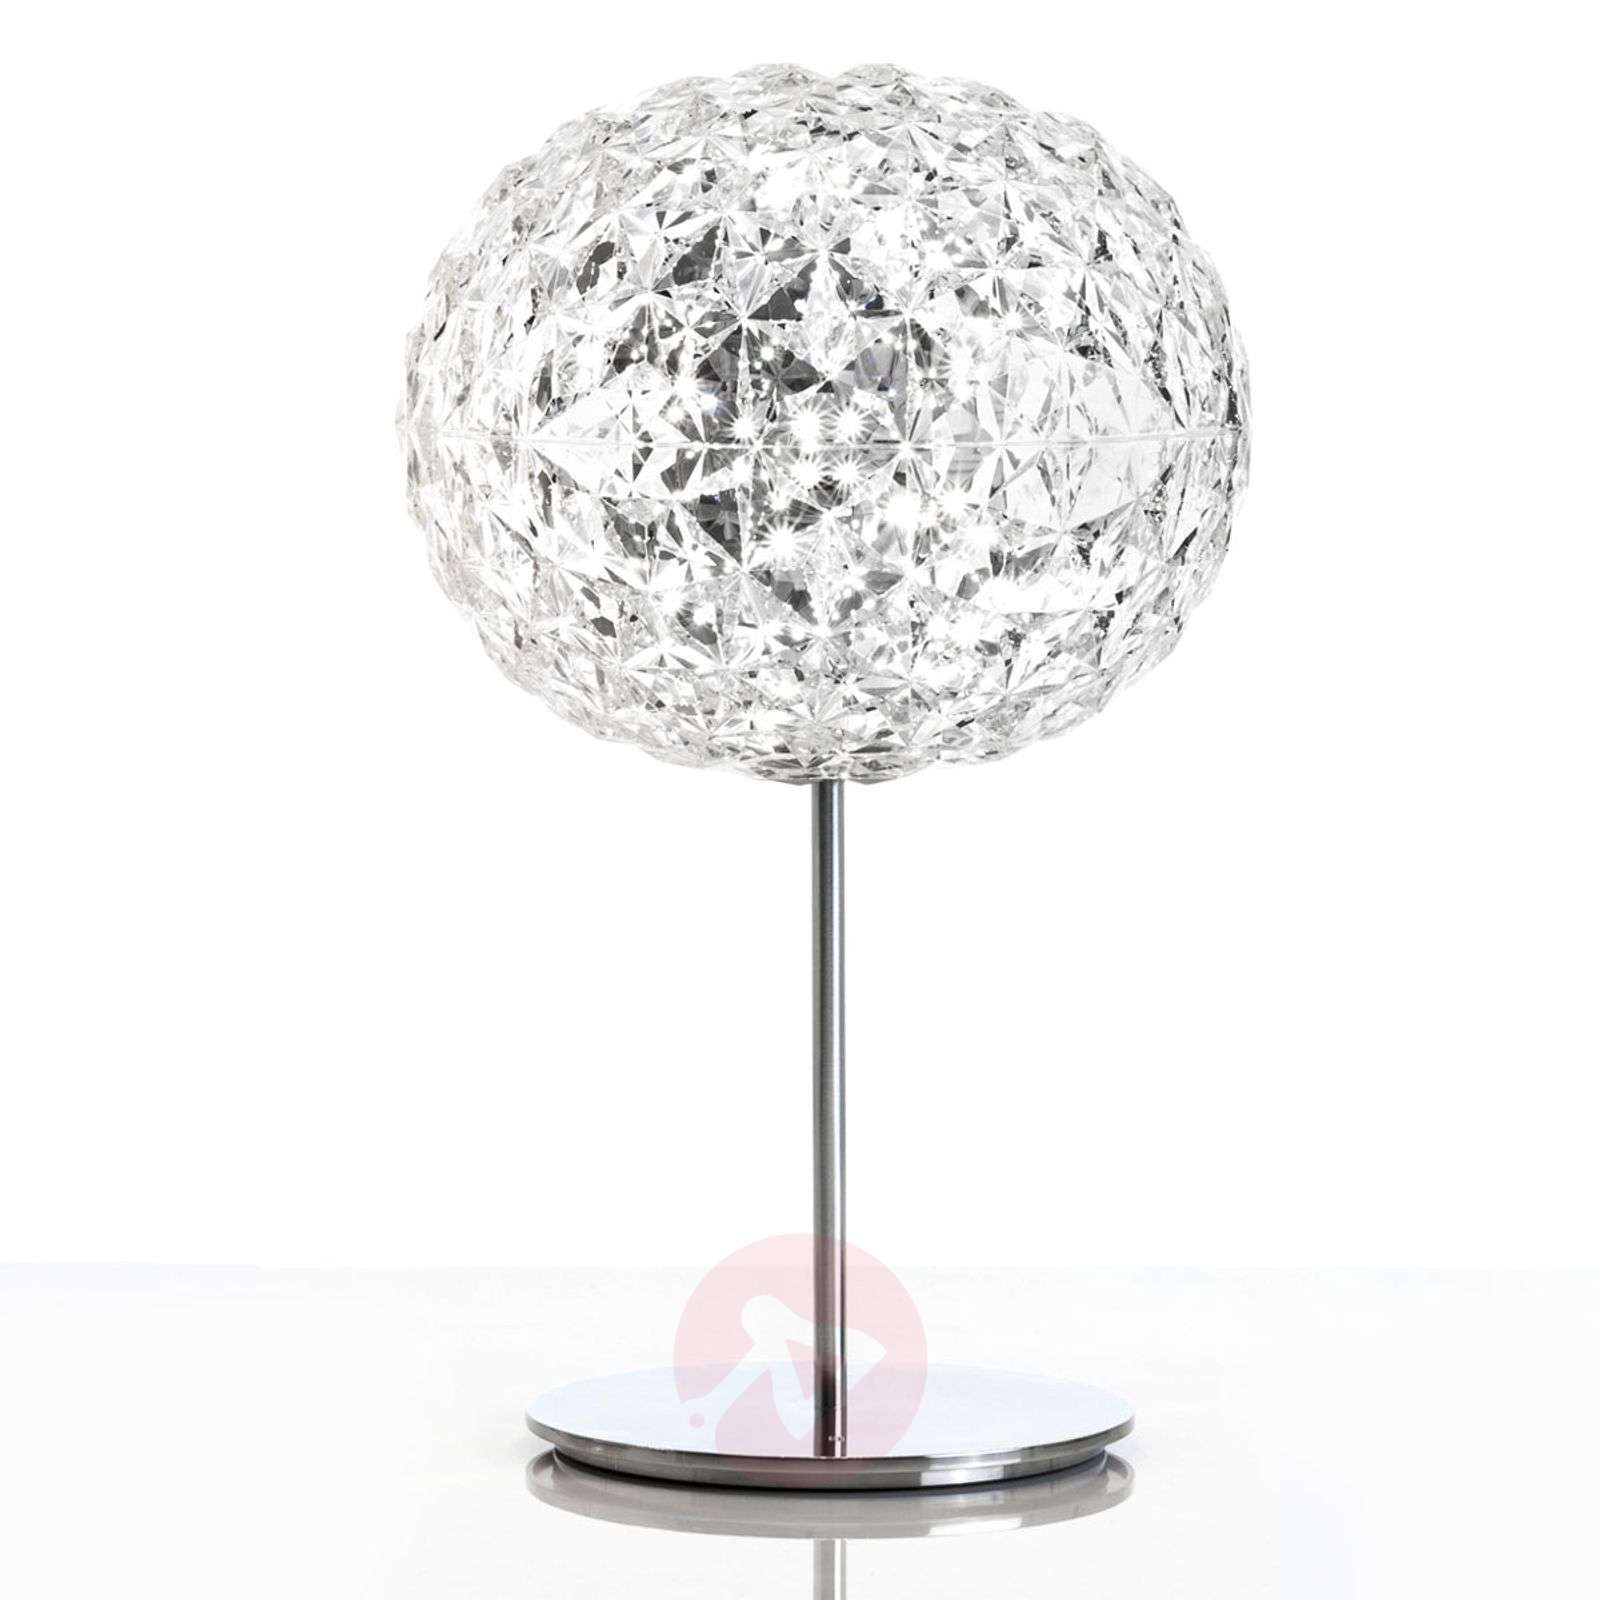 LED table lamp Planet with touch dimmer-5541025X-01